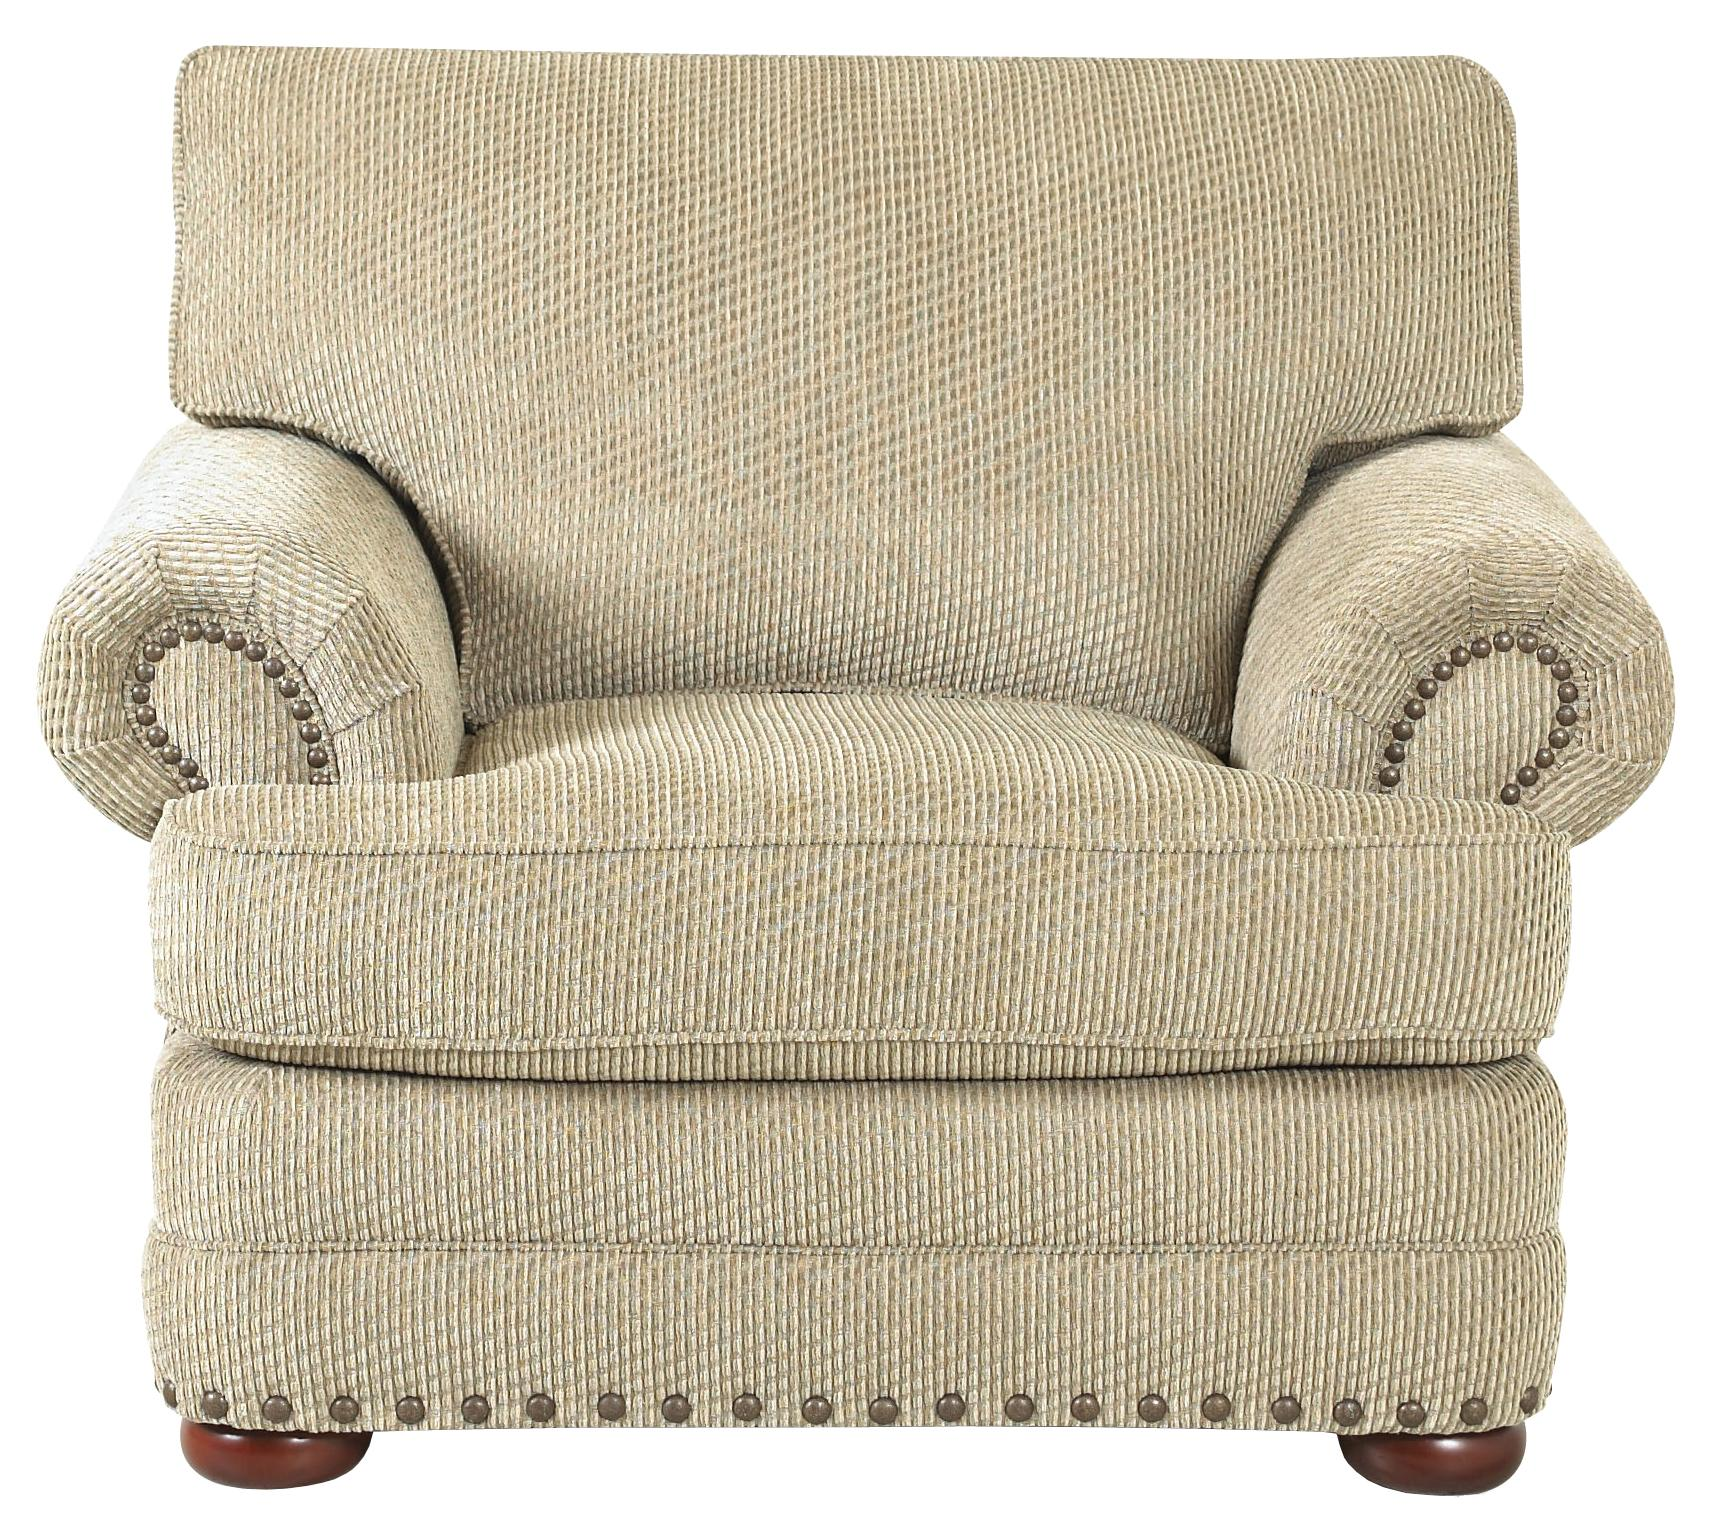 Traditional Styled Living Room Chair